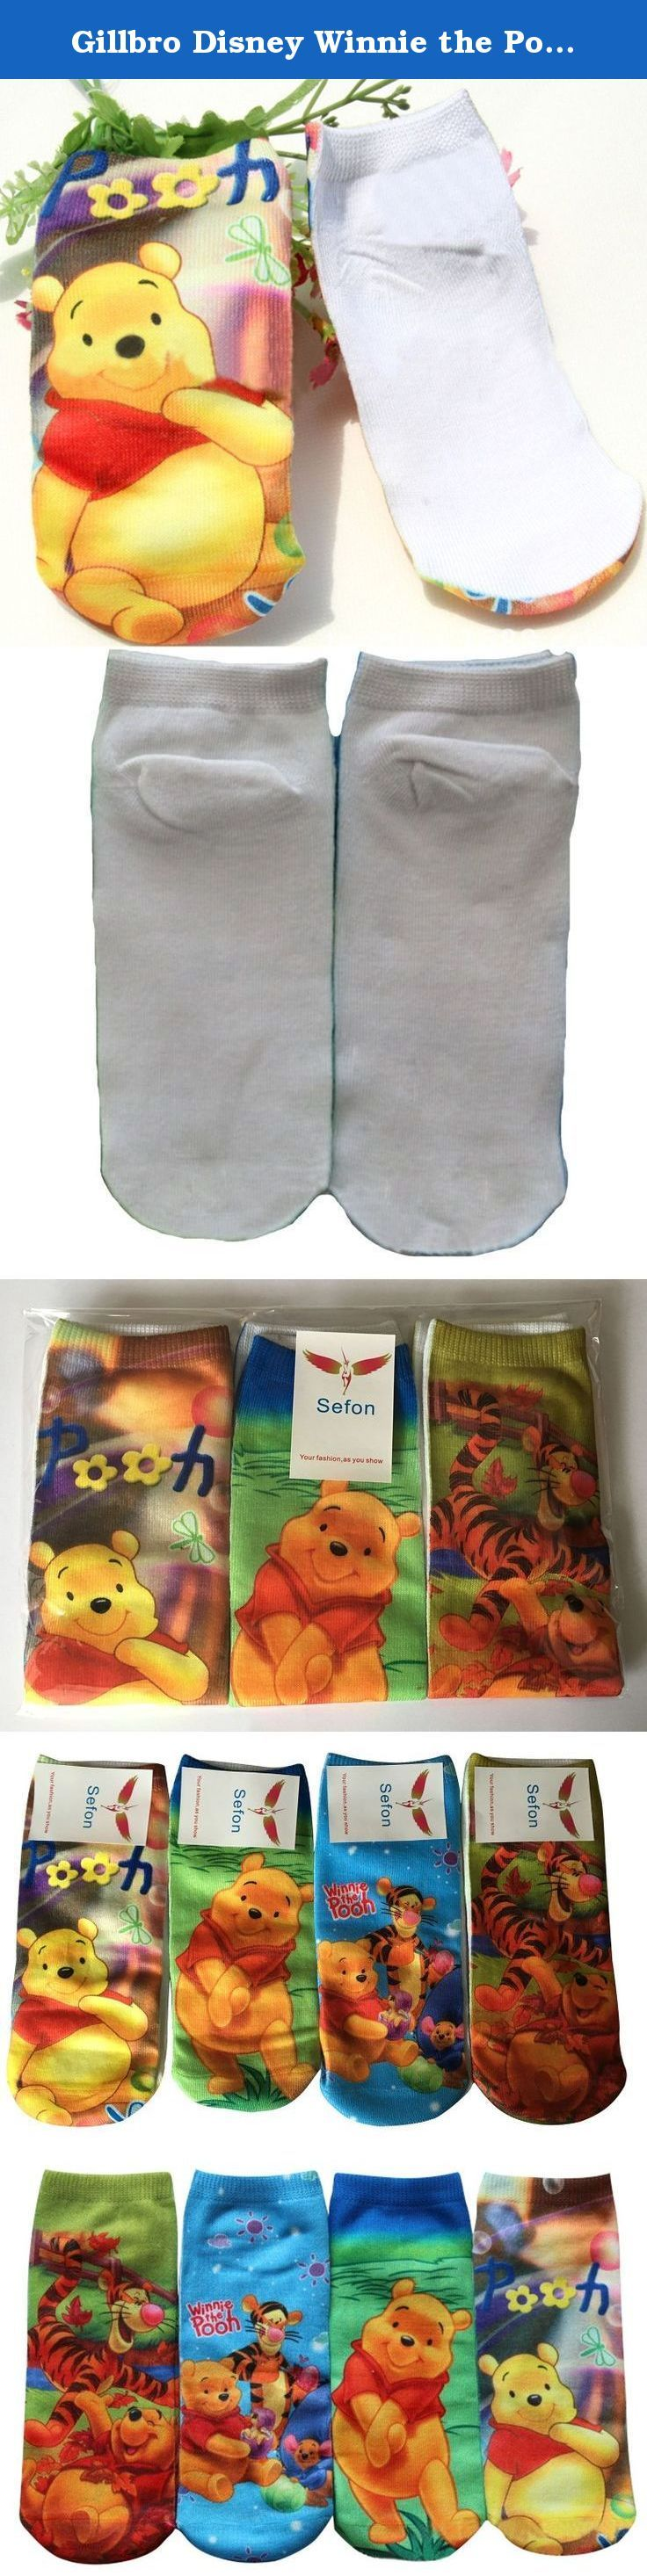 Gillbro Disney Winnie the Pooh Ankle Socks 4 Pairs, 5-8 Years Old. Super cute Disney Winnie socks made from a high quality cotton blend. The height comes to your ankle bone. Size 2-4T: feet length is 11cm,sock heigh is 5cm. It fit for 2-4 years, fit for feet size 13-16cm. Size 5-8T: feet length is 15cm,sock heigh is 5cm. It fit for 5-8 years, fit for feet size 17-21cm.